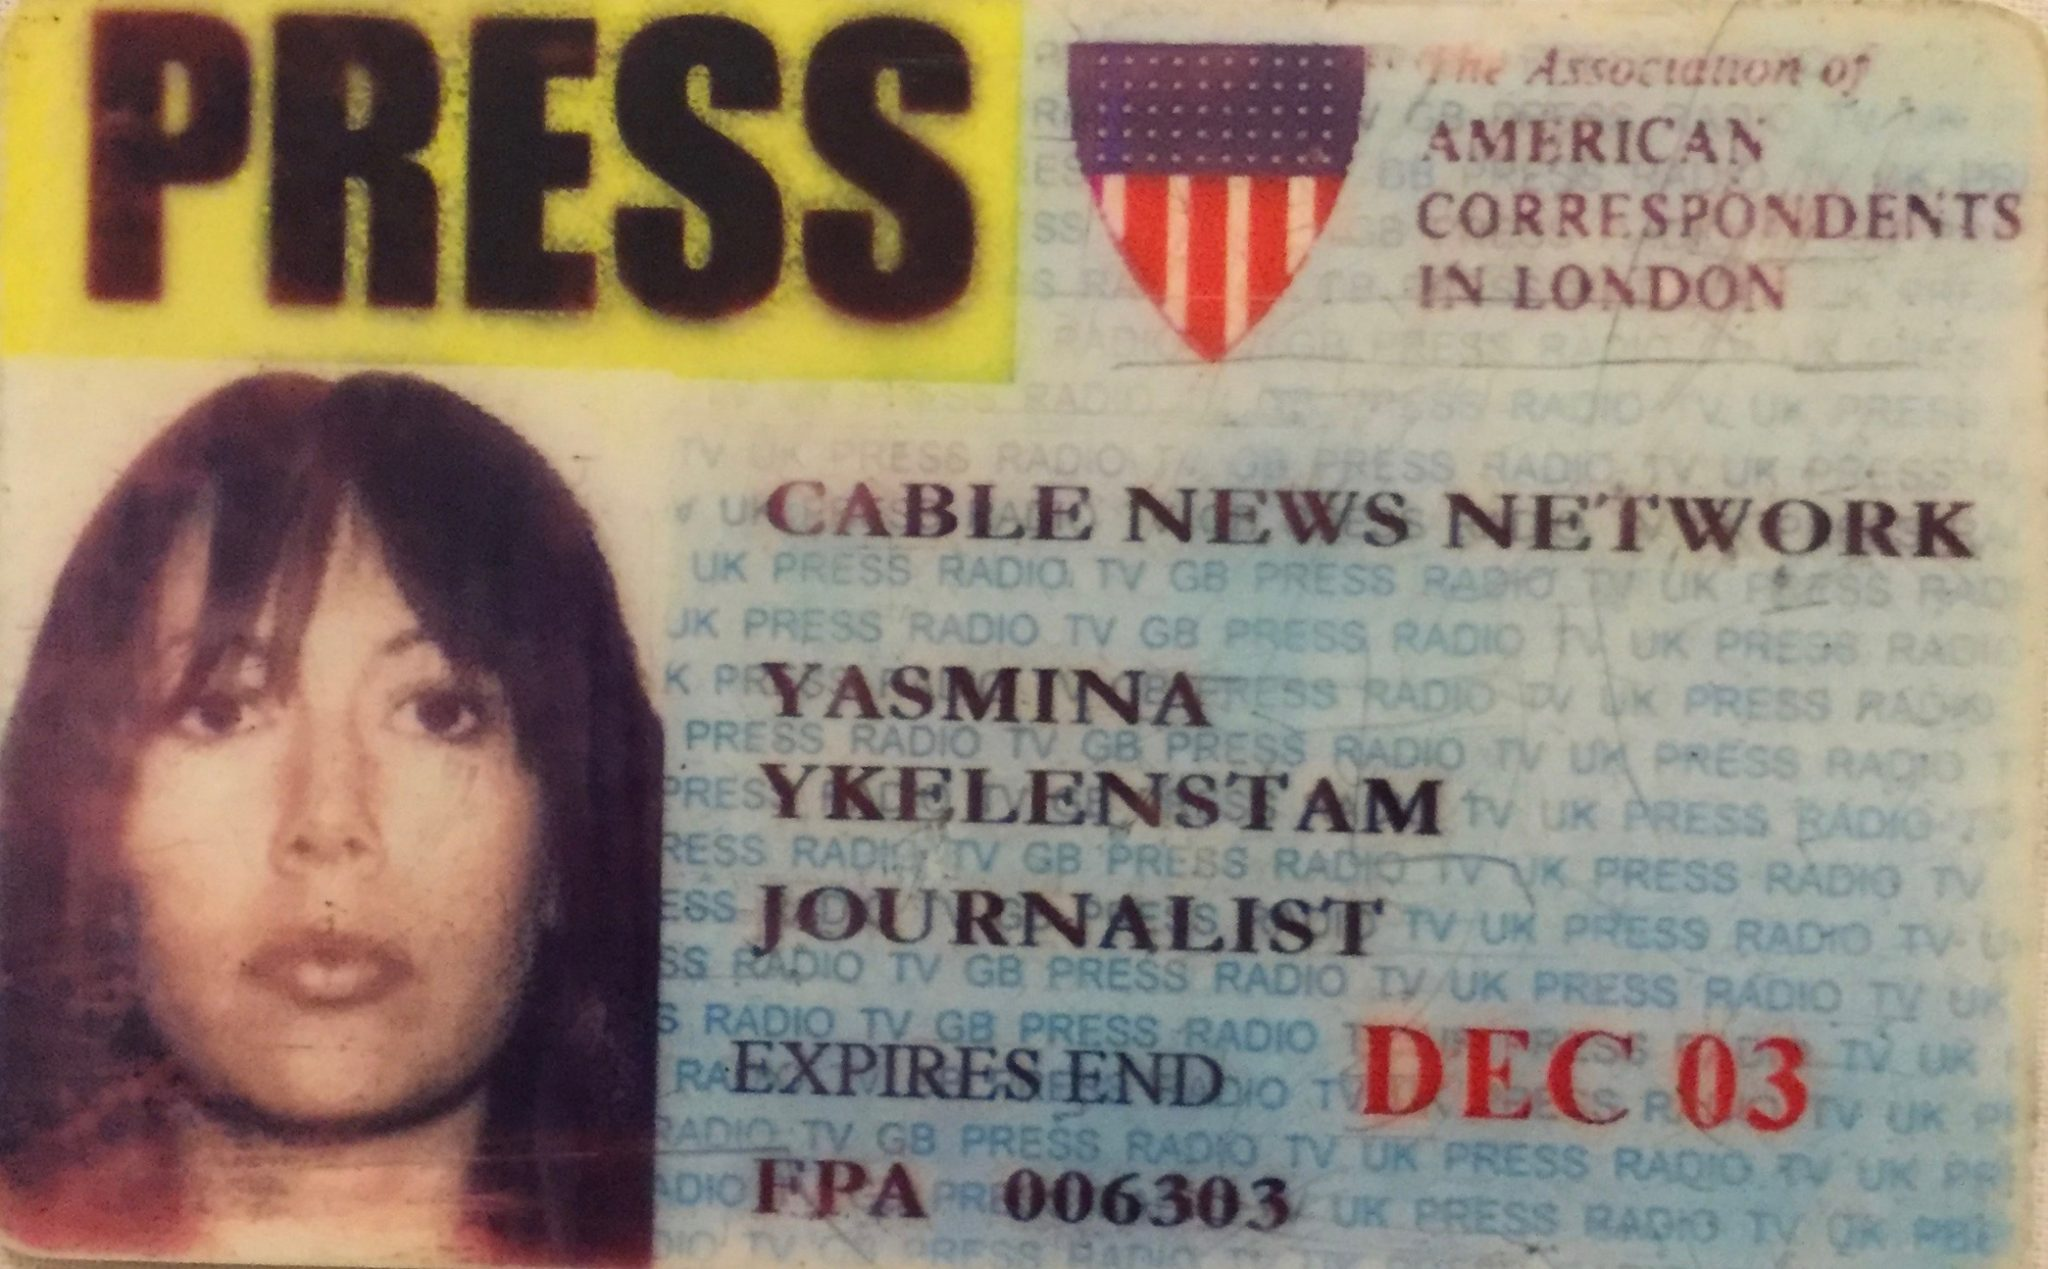 Another CNN London press card – American Correspondents in London